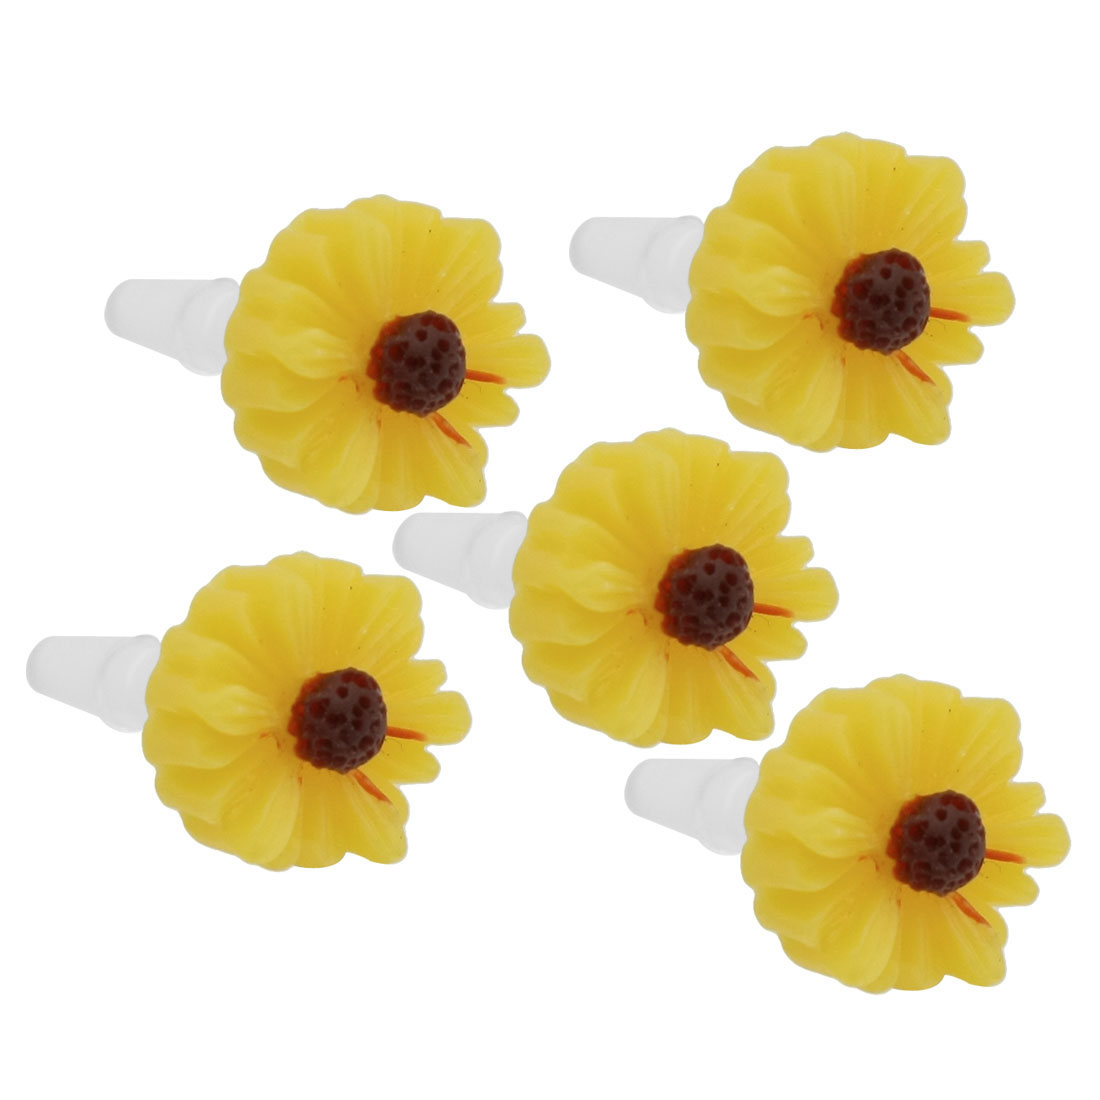 5 Pcs Yellow Daisy 3.5mm Ear Cap Anti Dust Plug Stopper for iPhone 5G 3G 4S